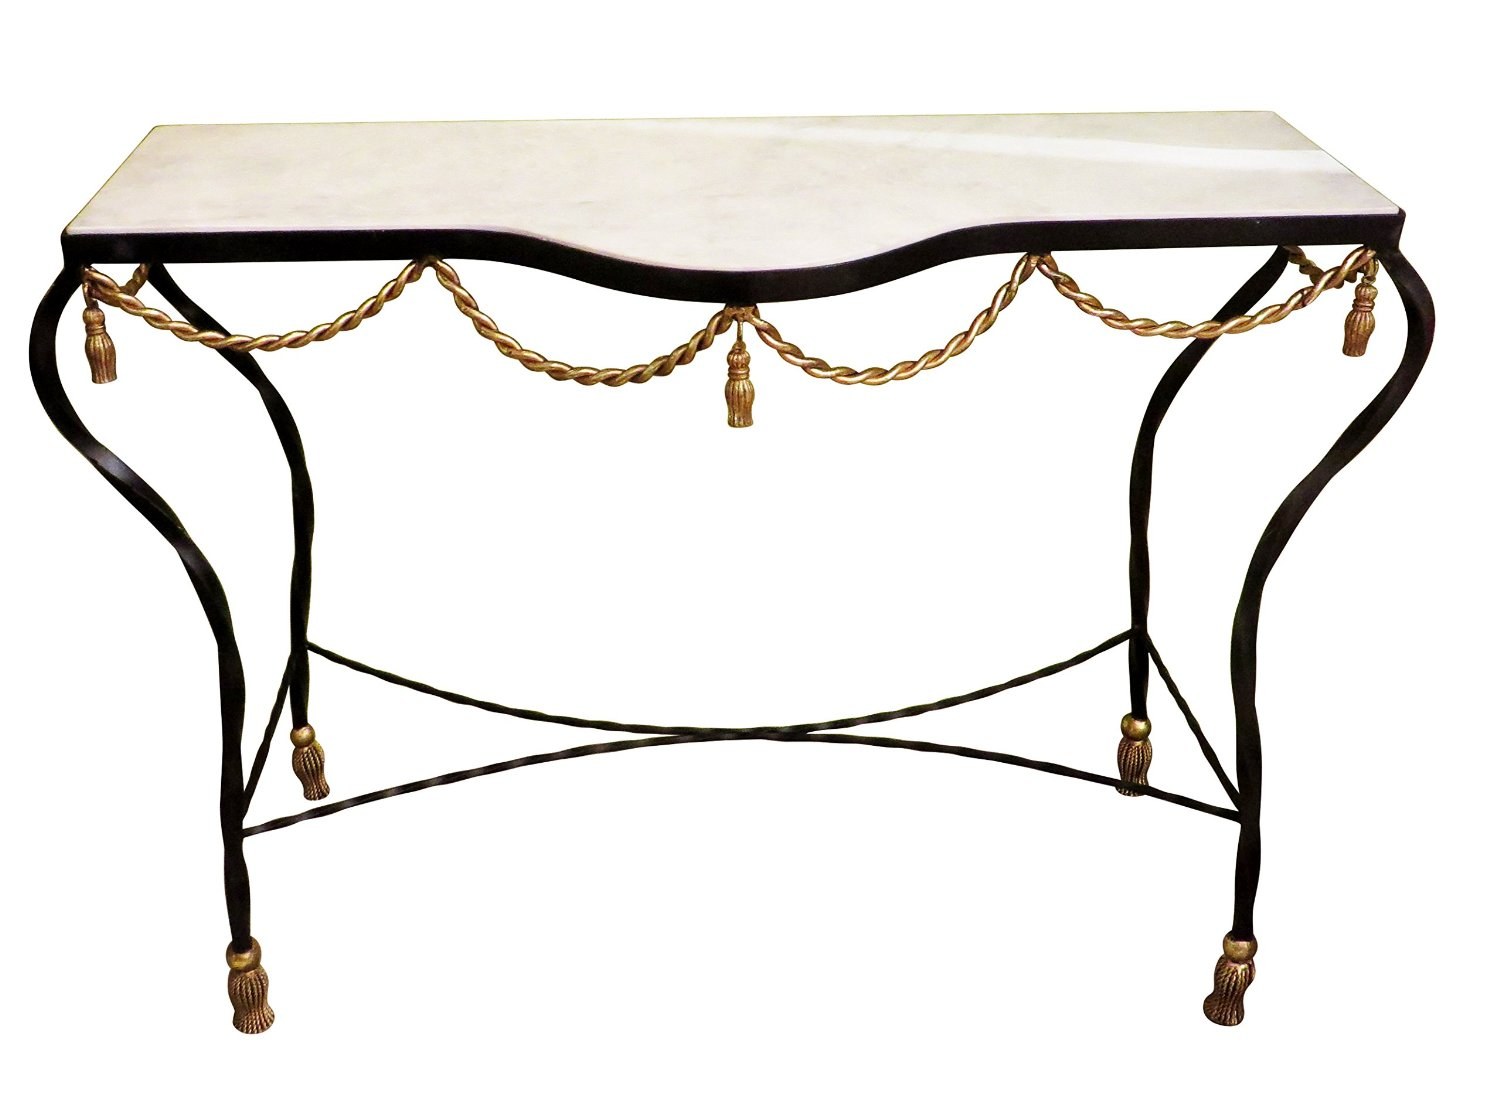 Get Quotations Black Gold Iron Swag Tel Console Table Ornate Marble Metal Sofa Rope